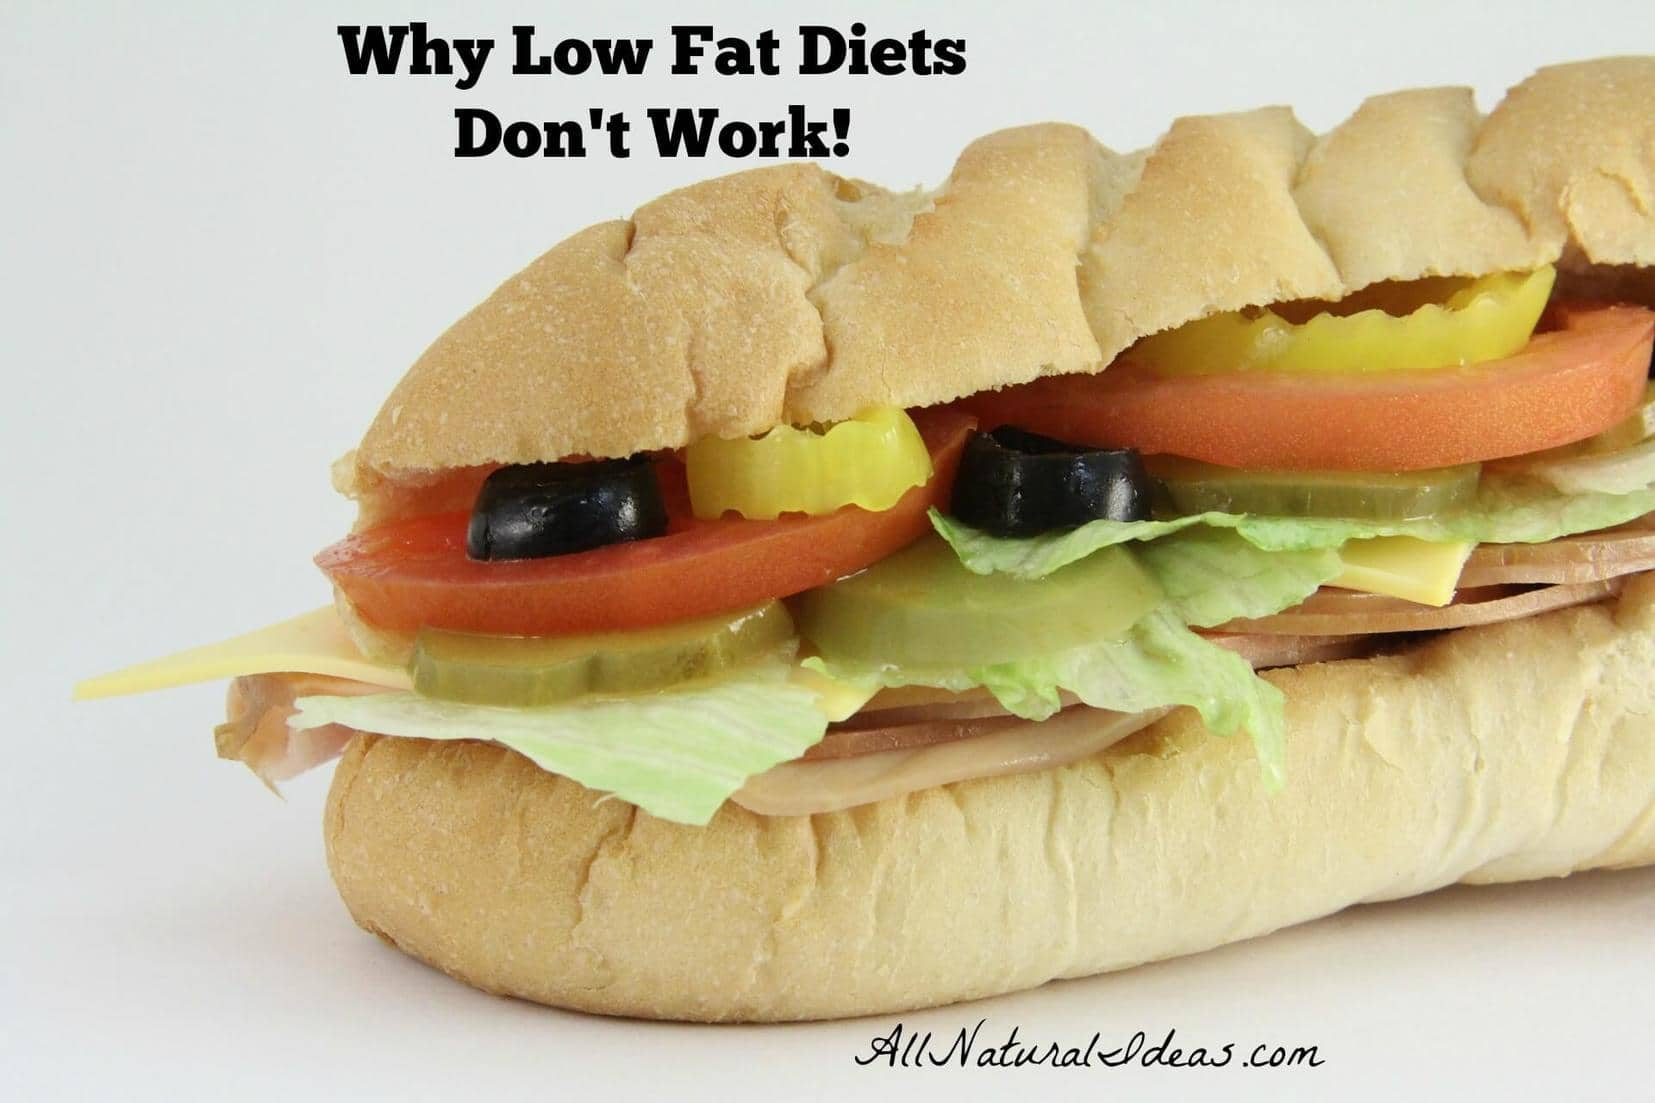 Are you struggling to lose weight on a low fat diet? Find out why low fat diets don't work long term to shed those extra pounds!